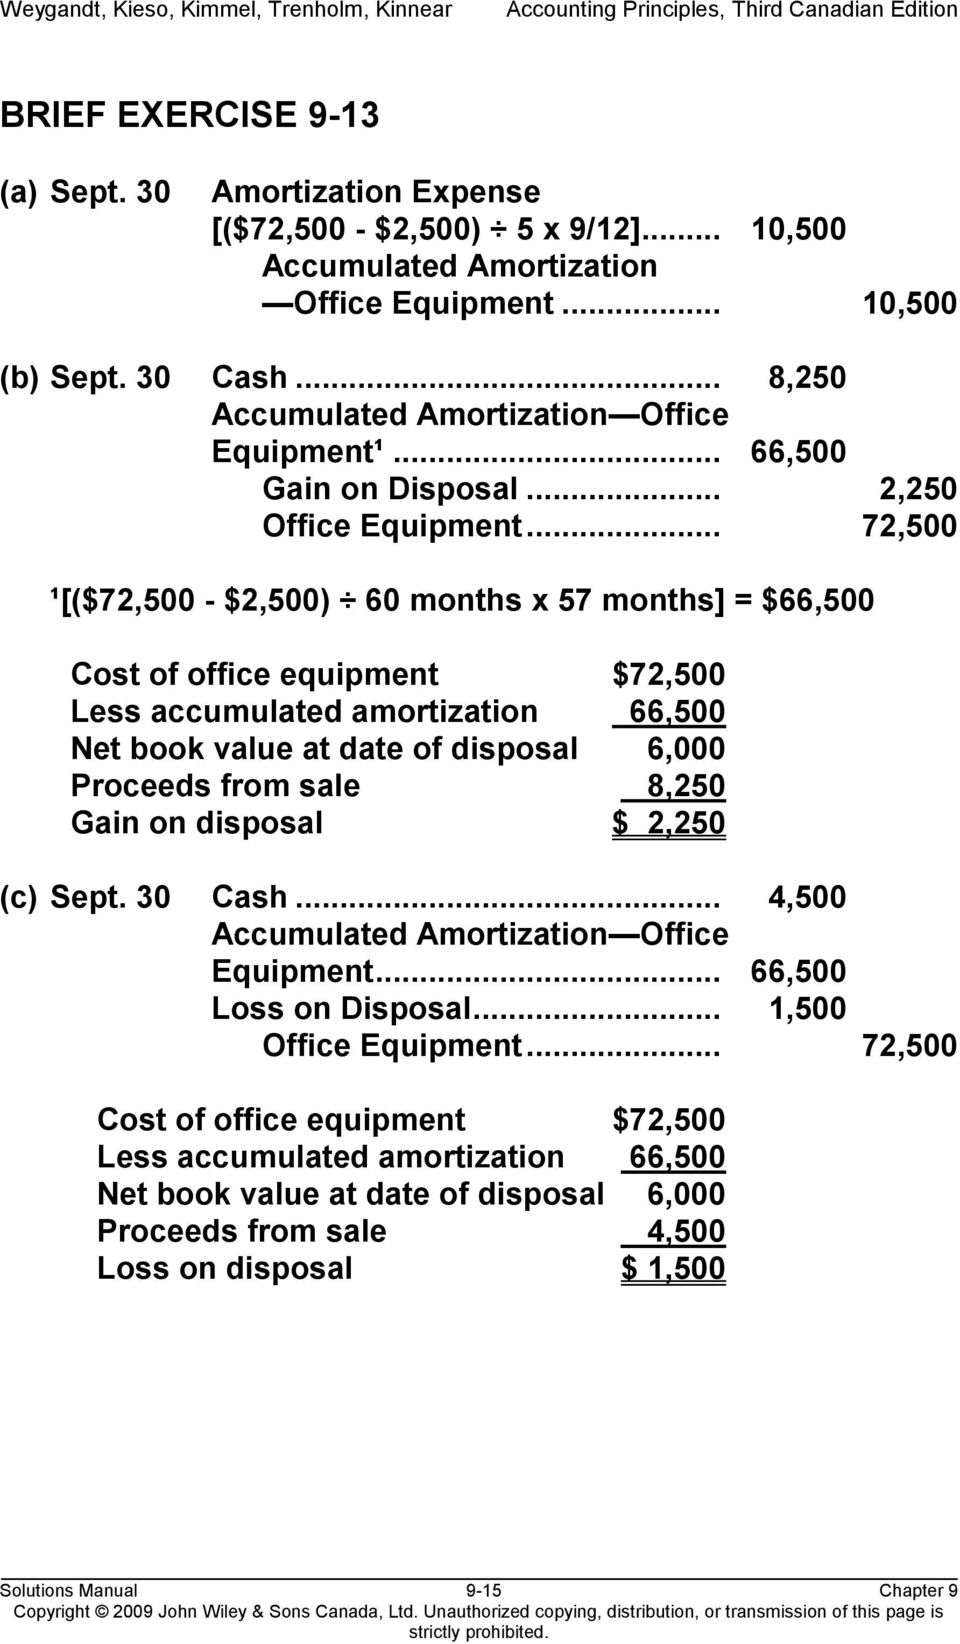 .. 72,500 ¹[($72,500 - $2,500) 60 months x 57 months] = $66,500 Cost of office equipment $72,500 Less accumulated amortization 66,500 Net book value at date of disposal 6,000 Proceeds from sale 08,